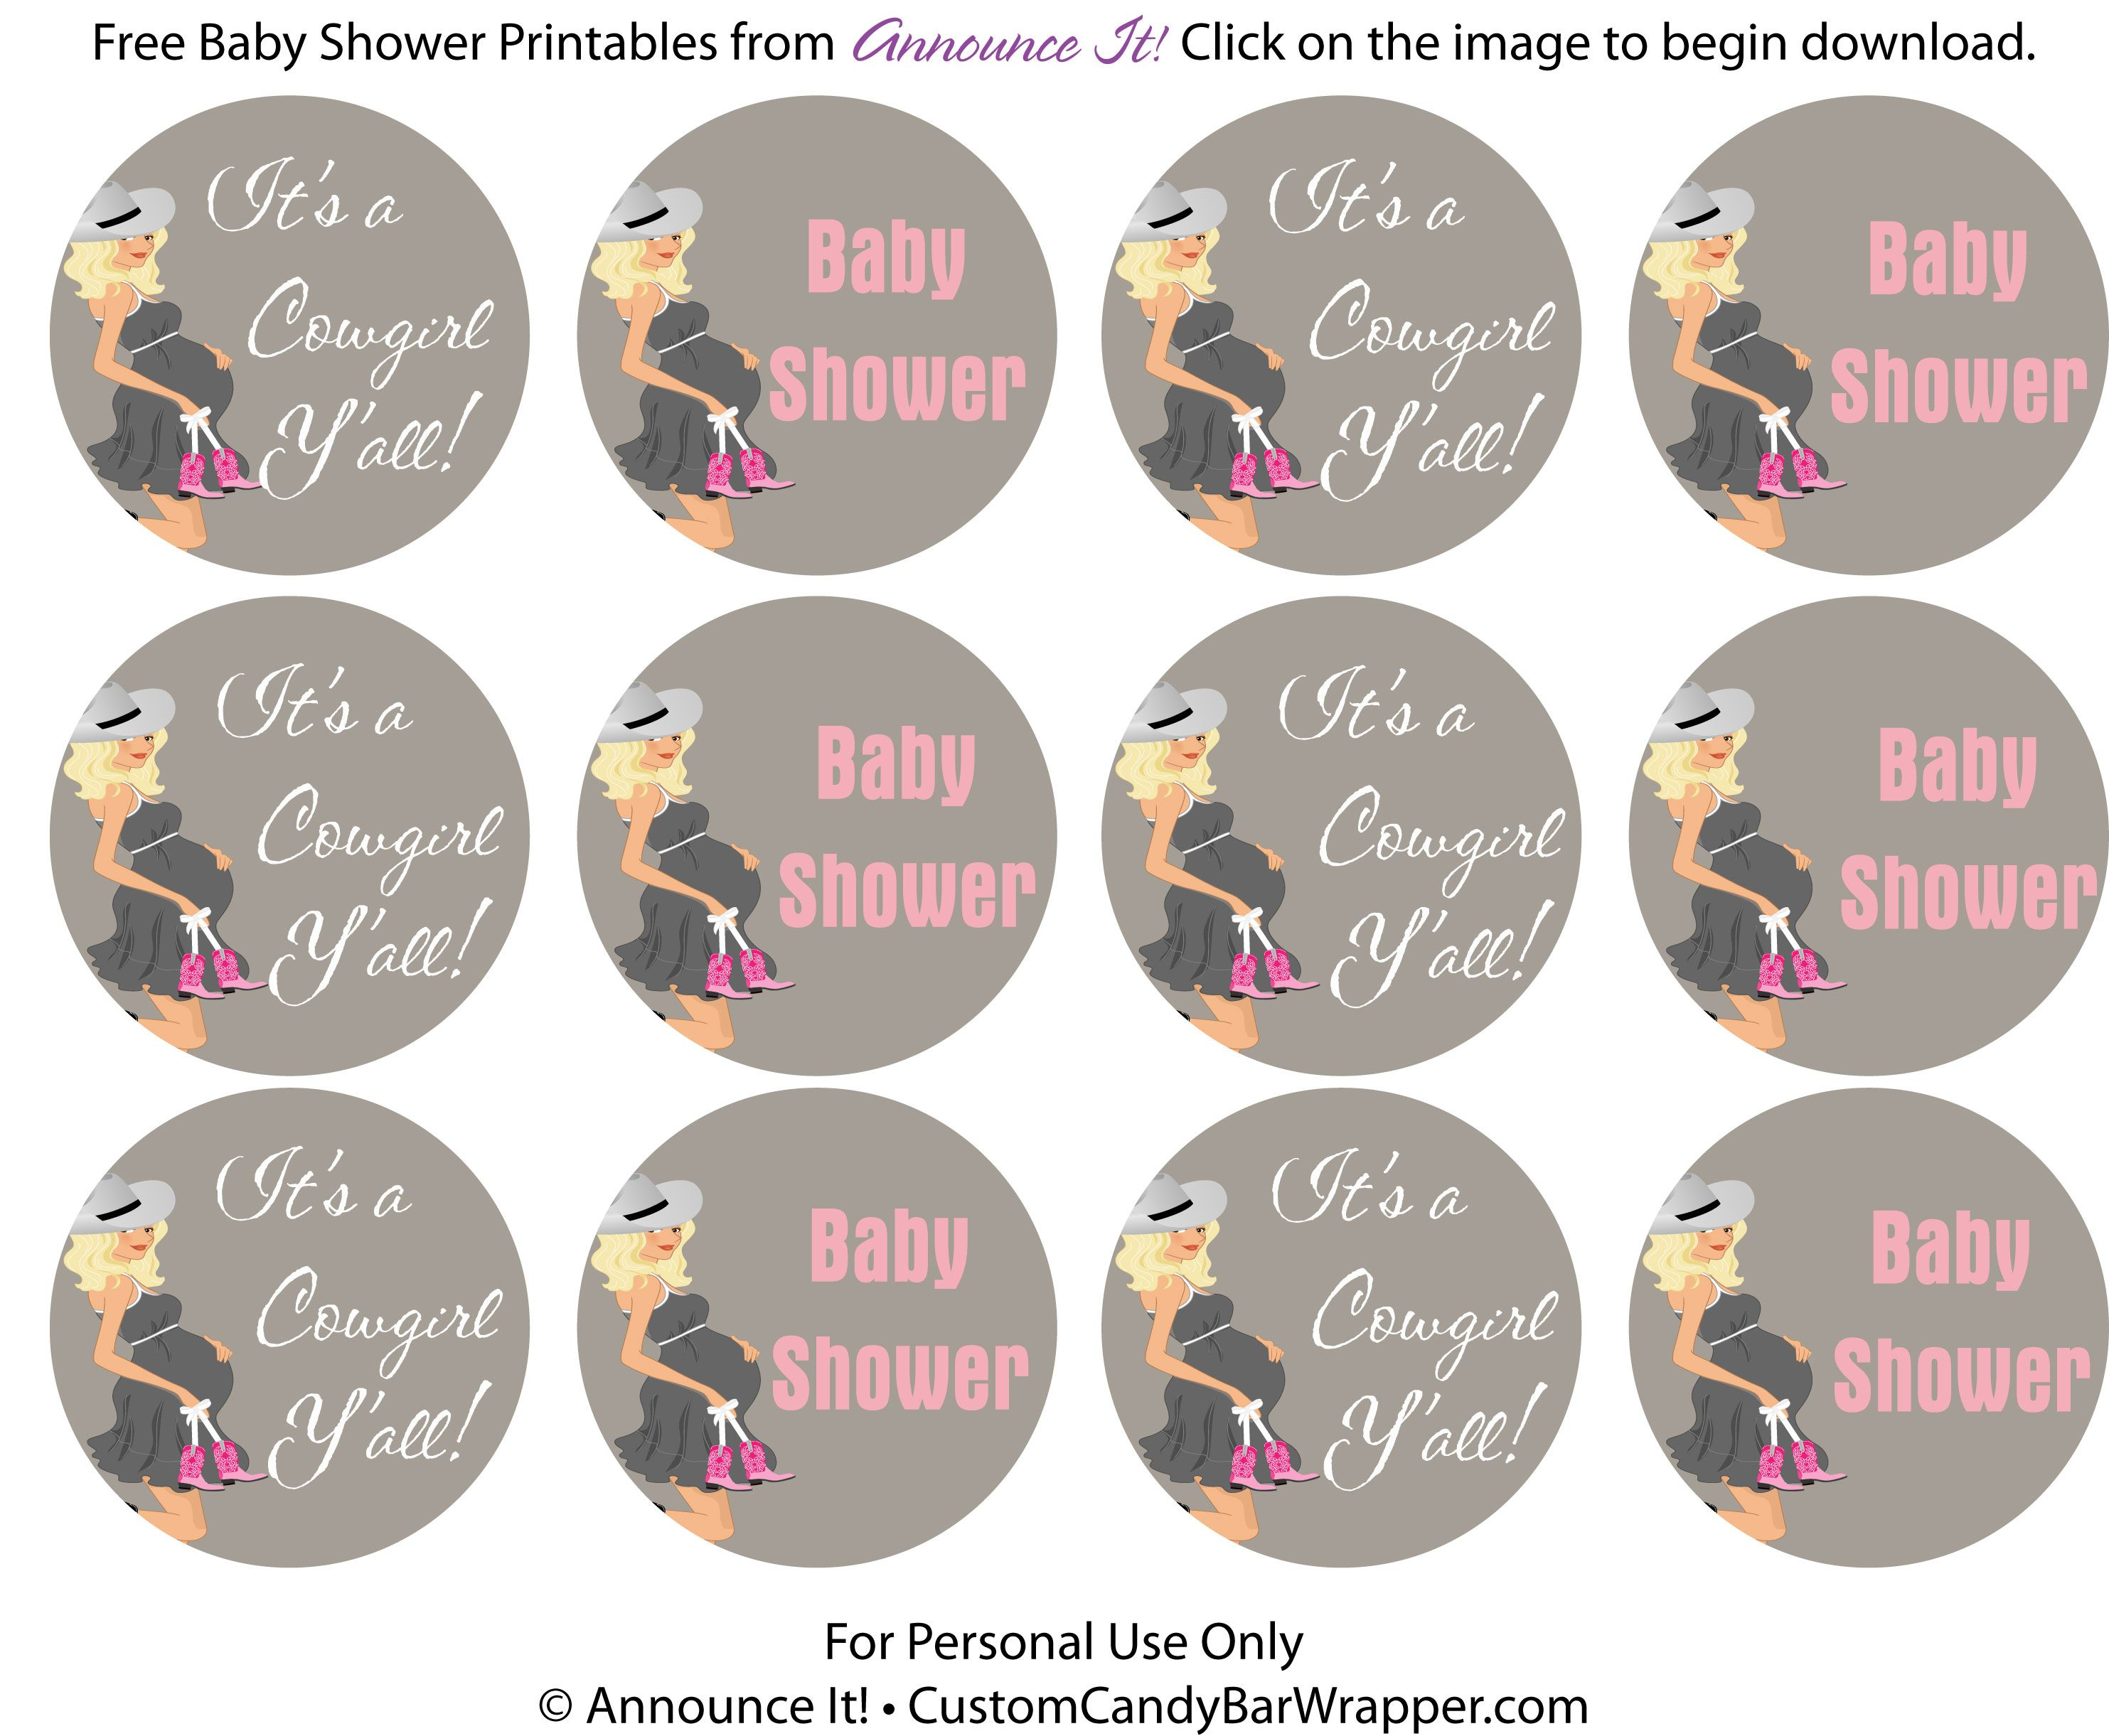 free cowgirl baby shower printable may be used for cupcake toppers